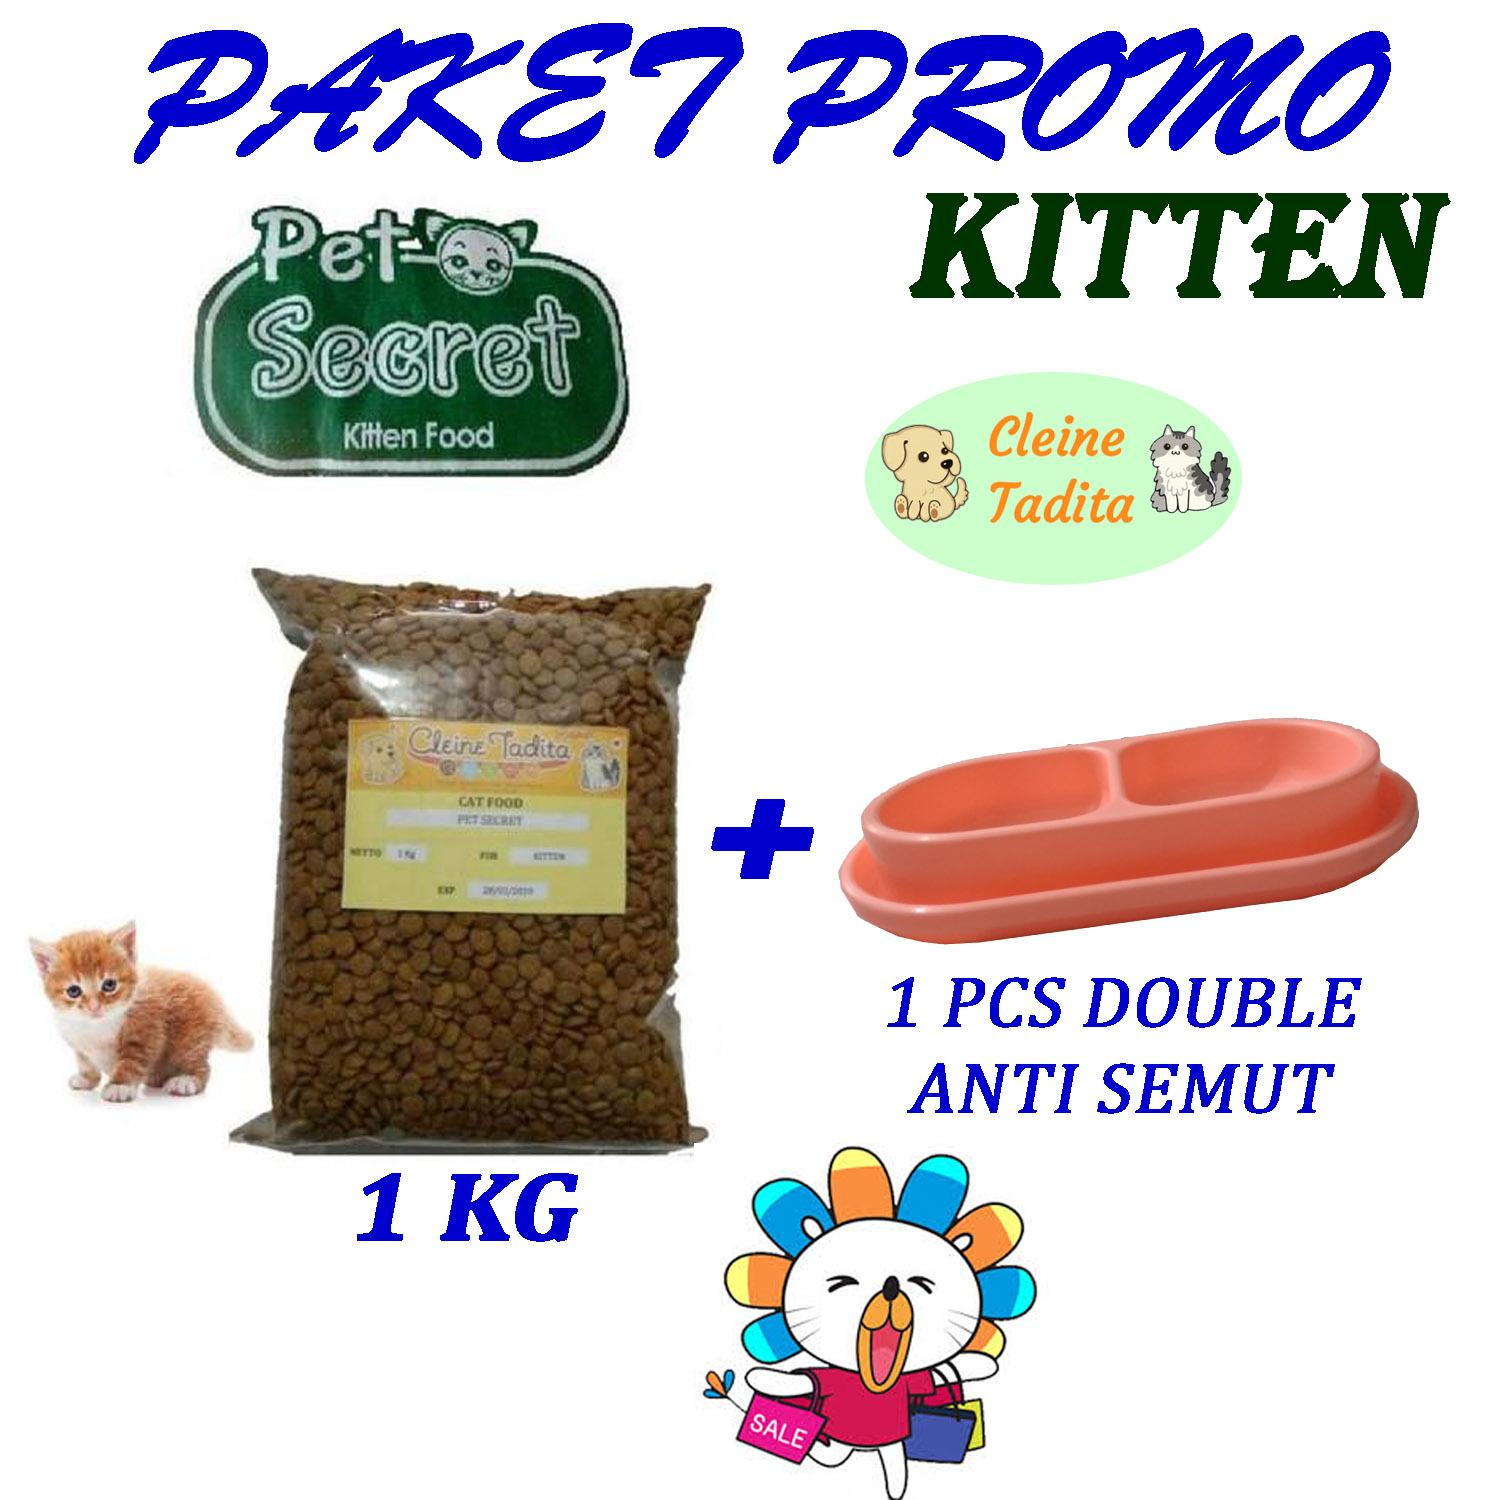 Promo makanan kucing Pet Secret Kitten - Cleine Tadita Petshop